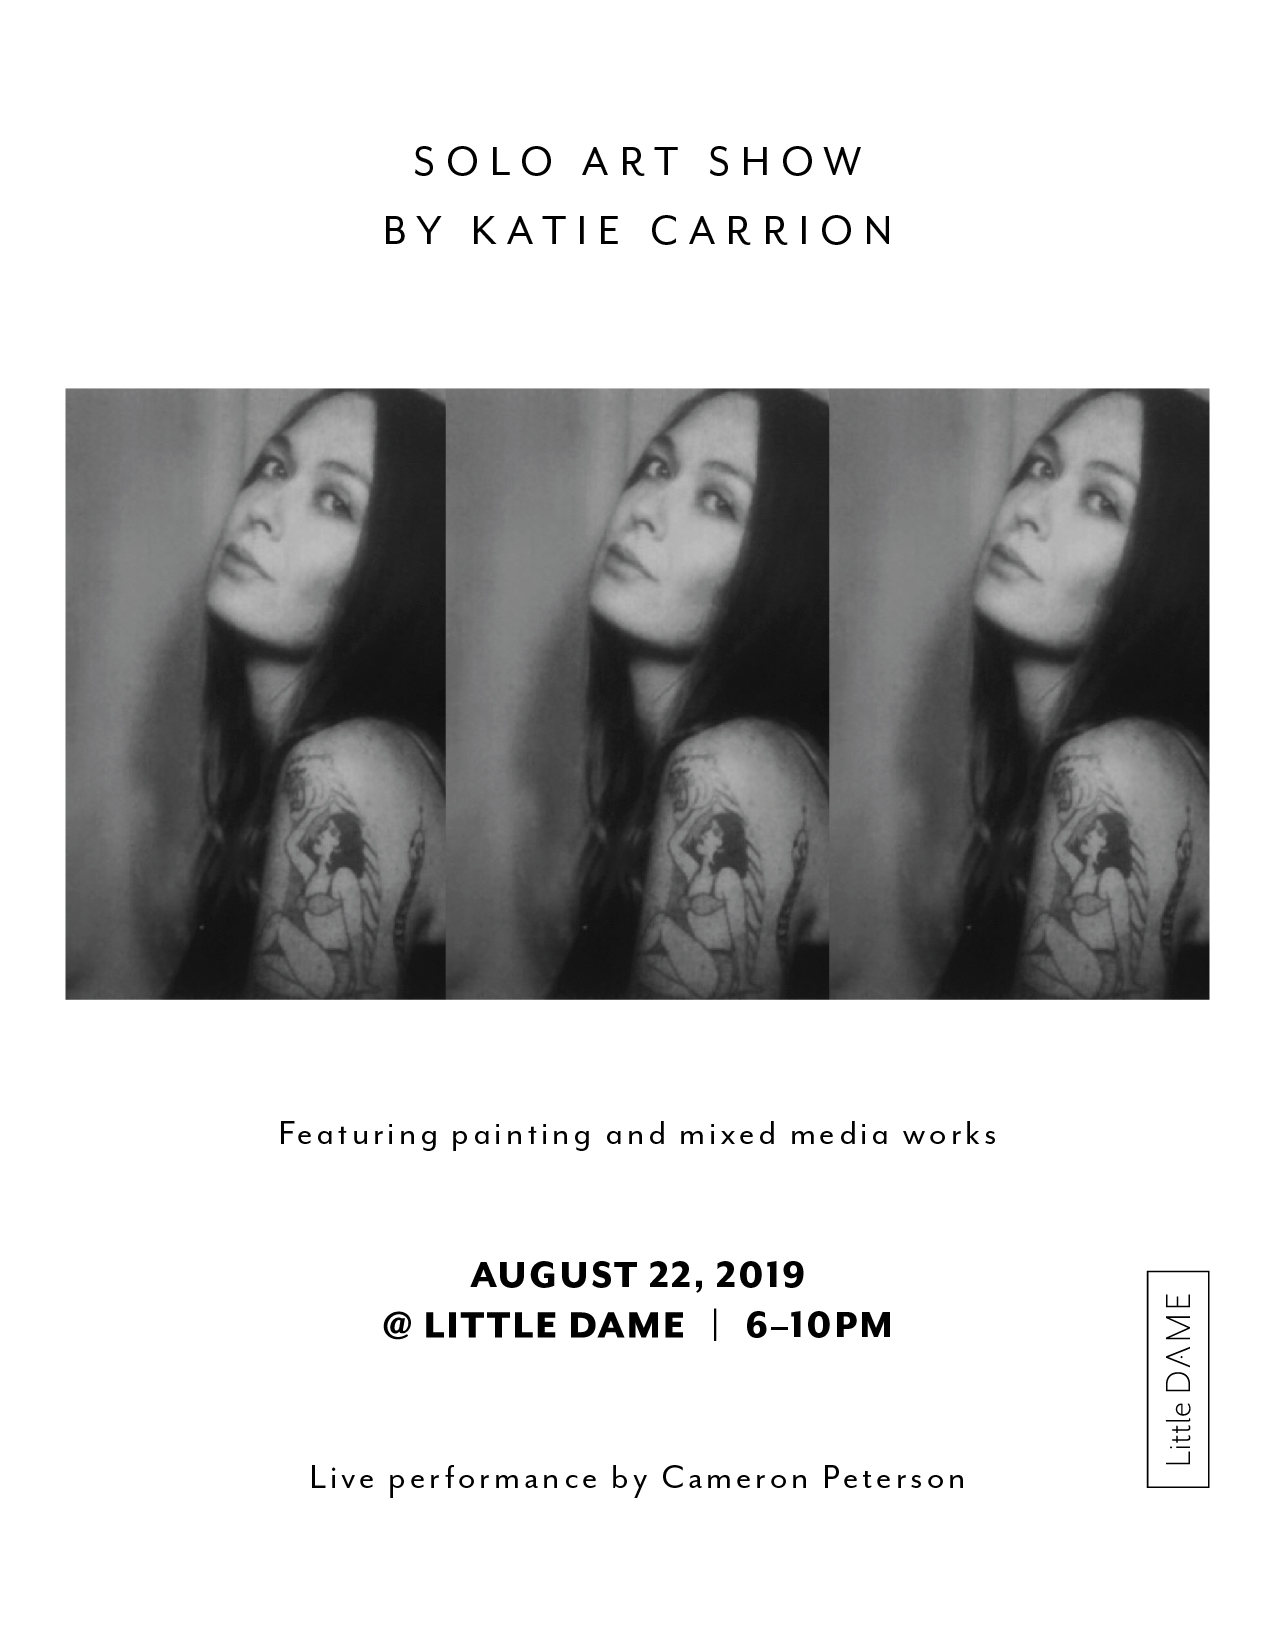 Solo Art Show by Katie Carrion,  8.5x11 Flyer